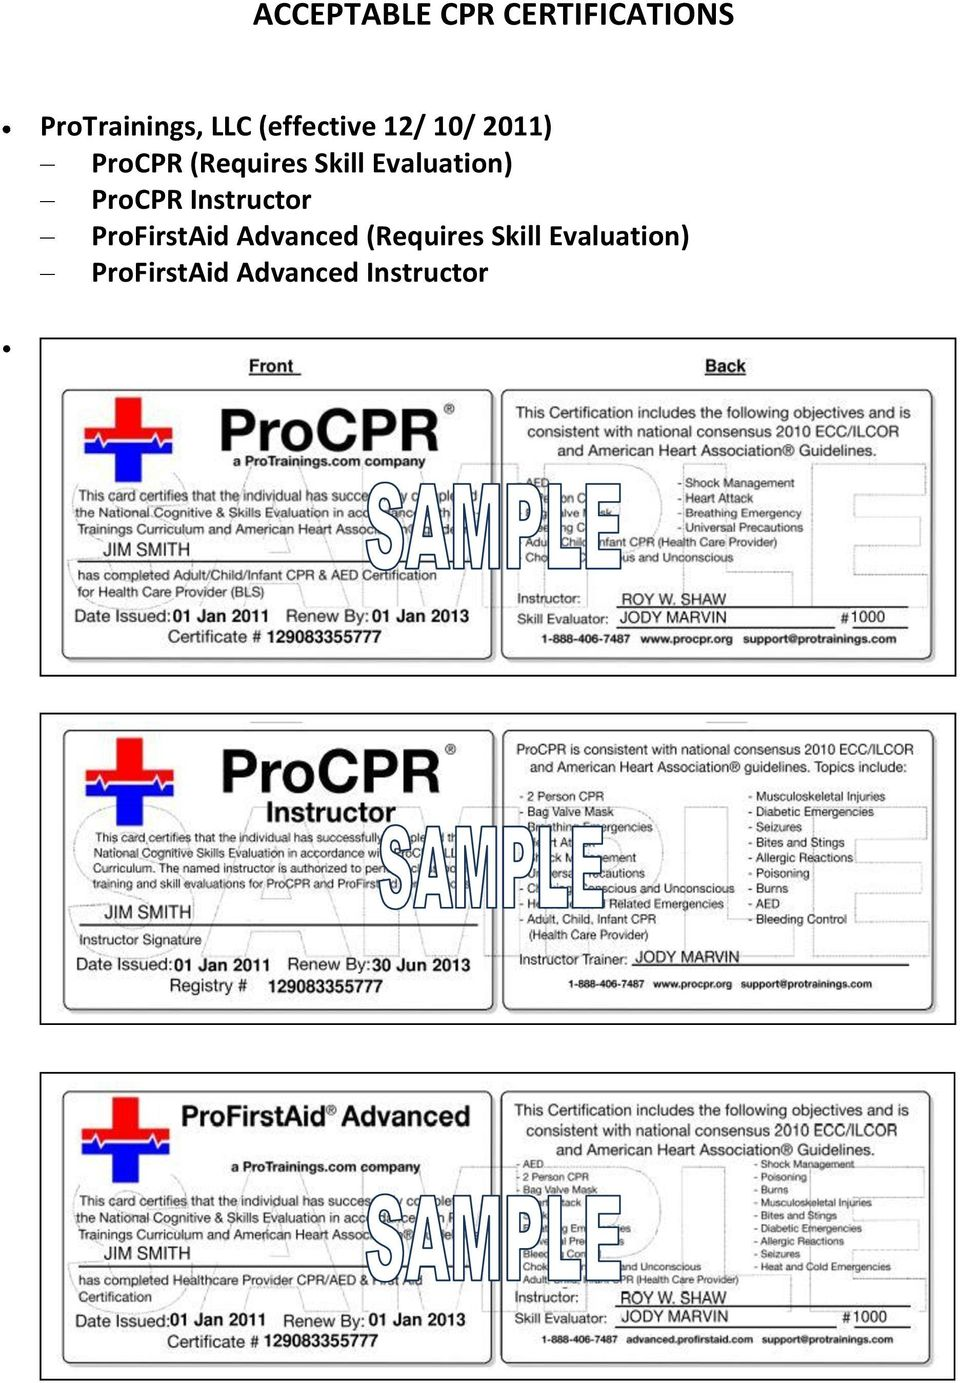 Evaluation) ProCPR Instructor ProFirstAid Advanced